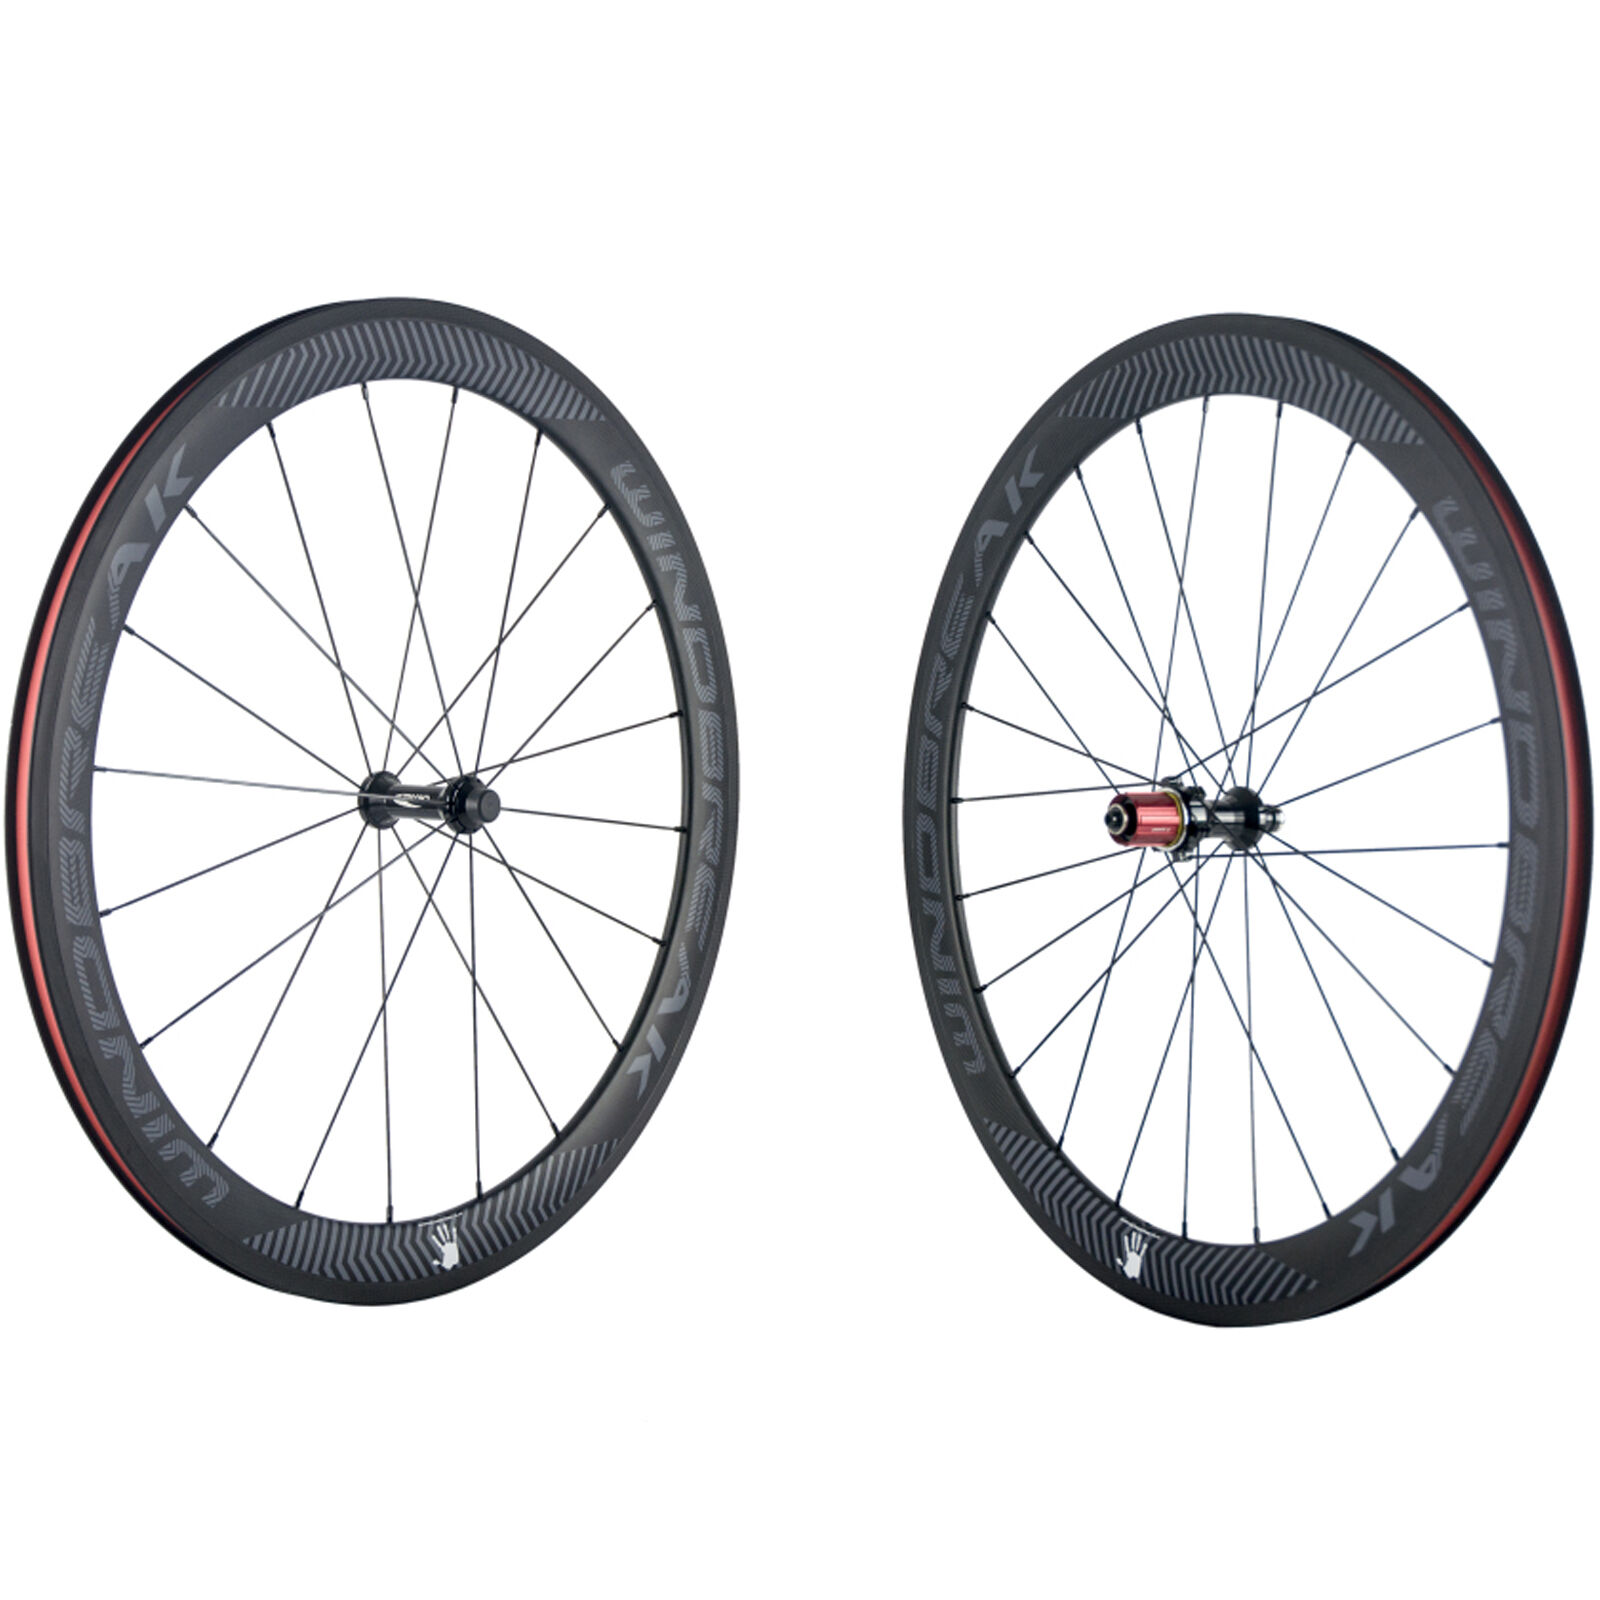 WINDBREAK 50mm Clincher Carbon Cycling Carbon Wheels Bicycle Carbon Wheelset